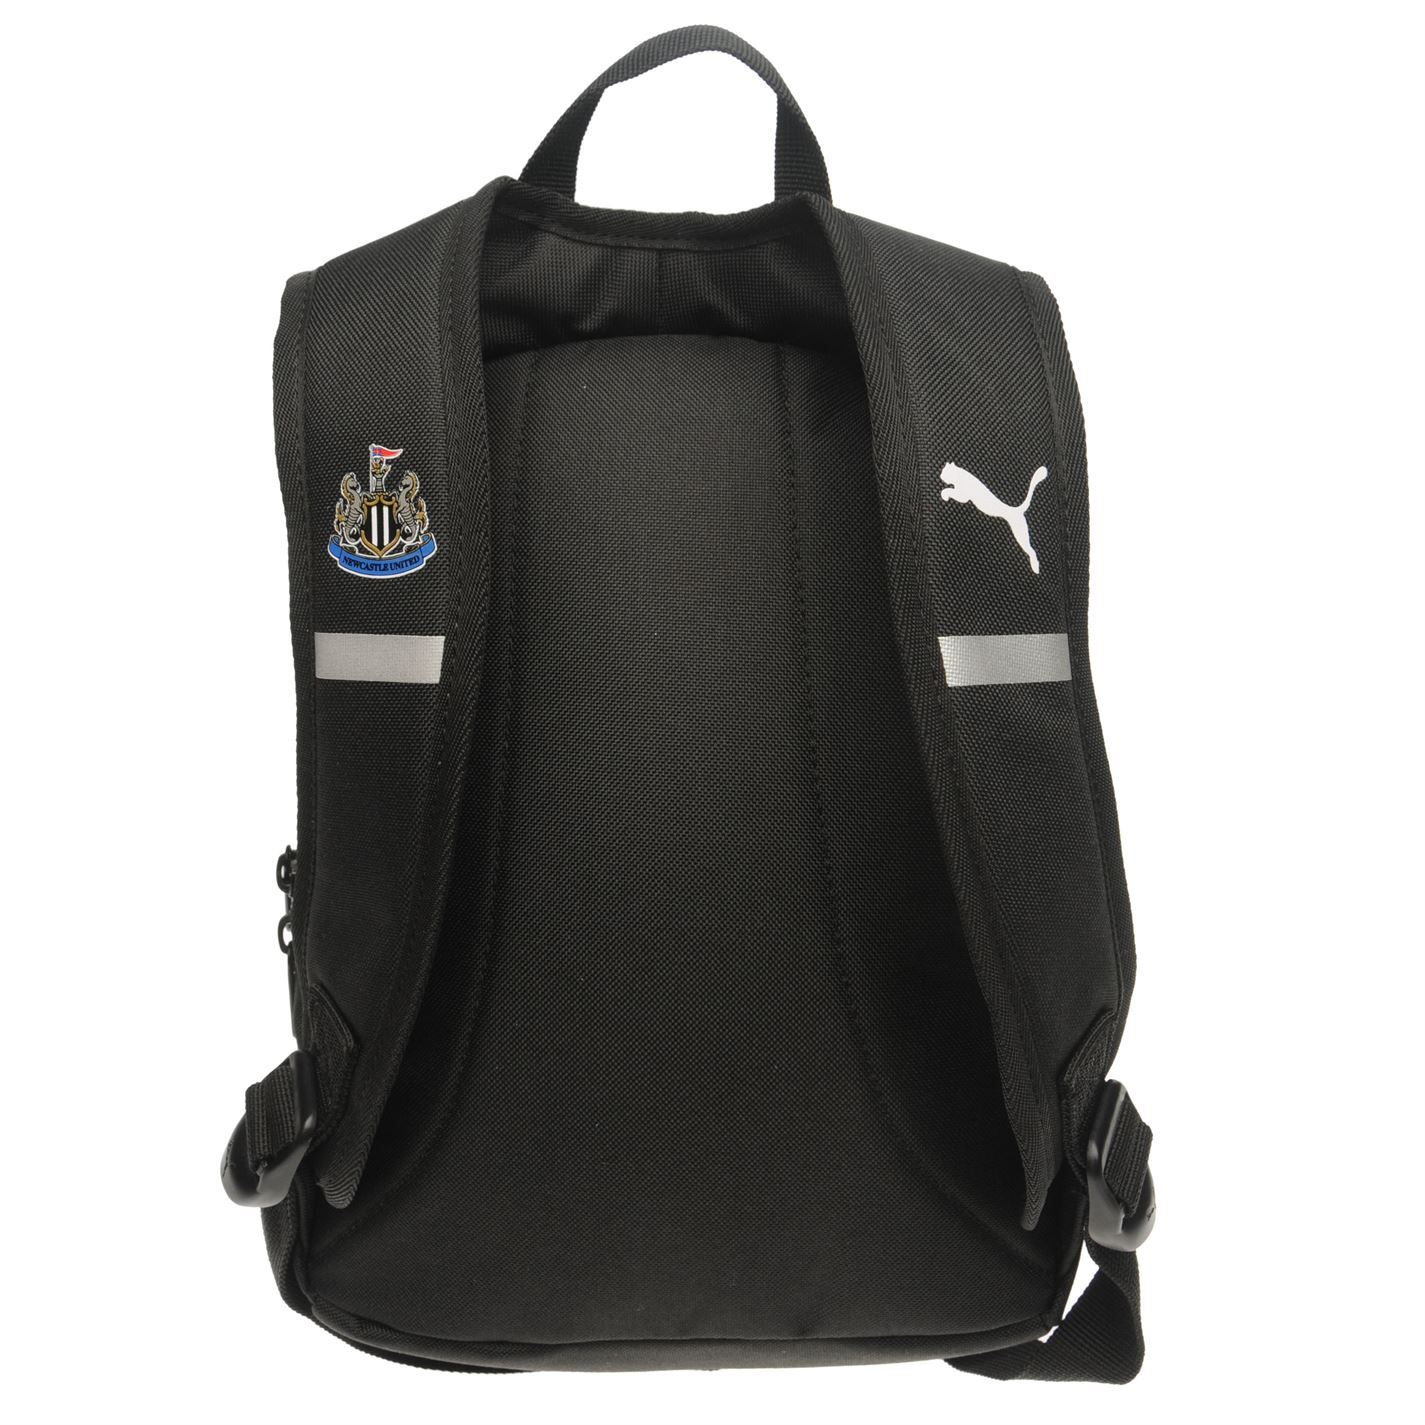 a9ce802c27 Puma Newcastle United Backpack Black White Sports Bag Holdall Rucksack